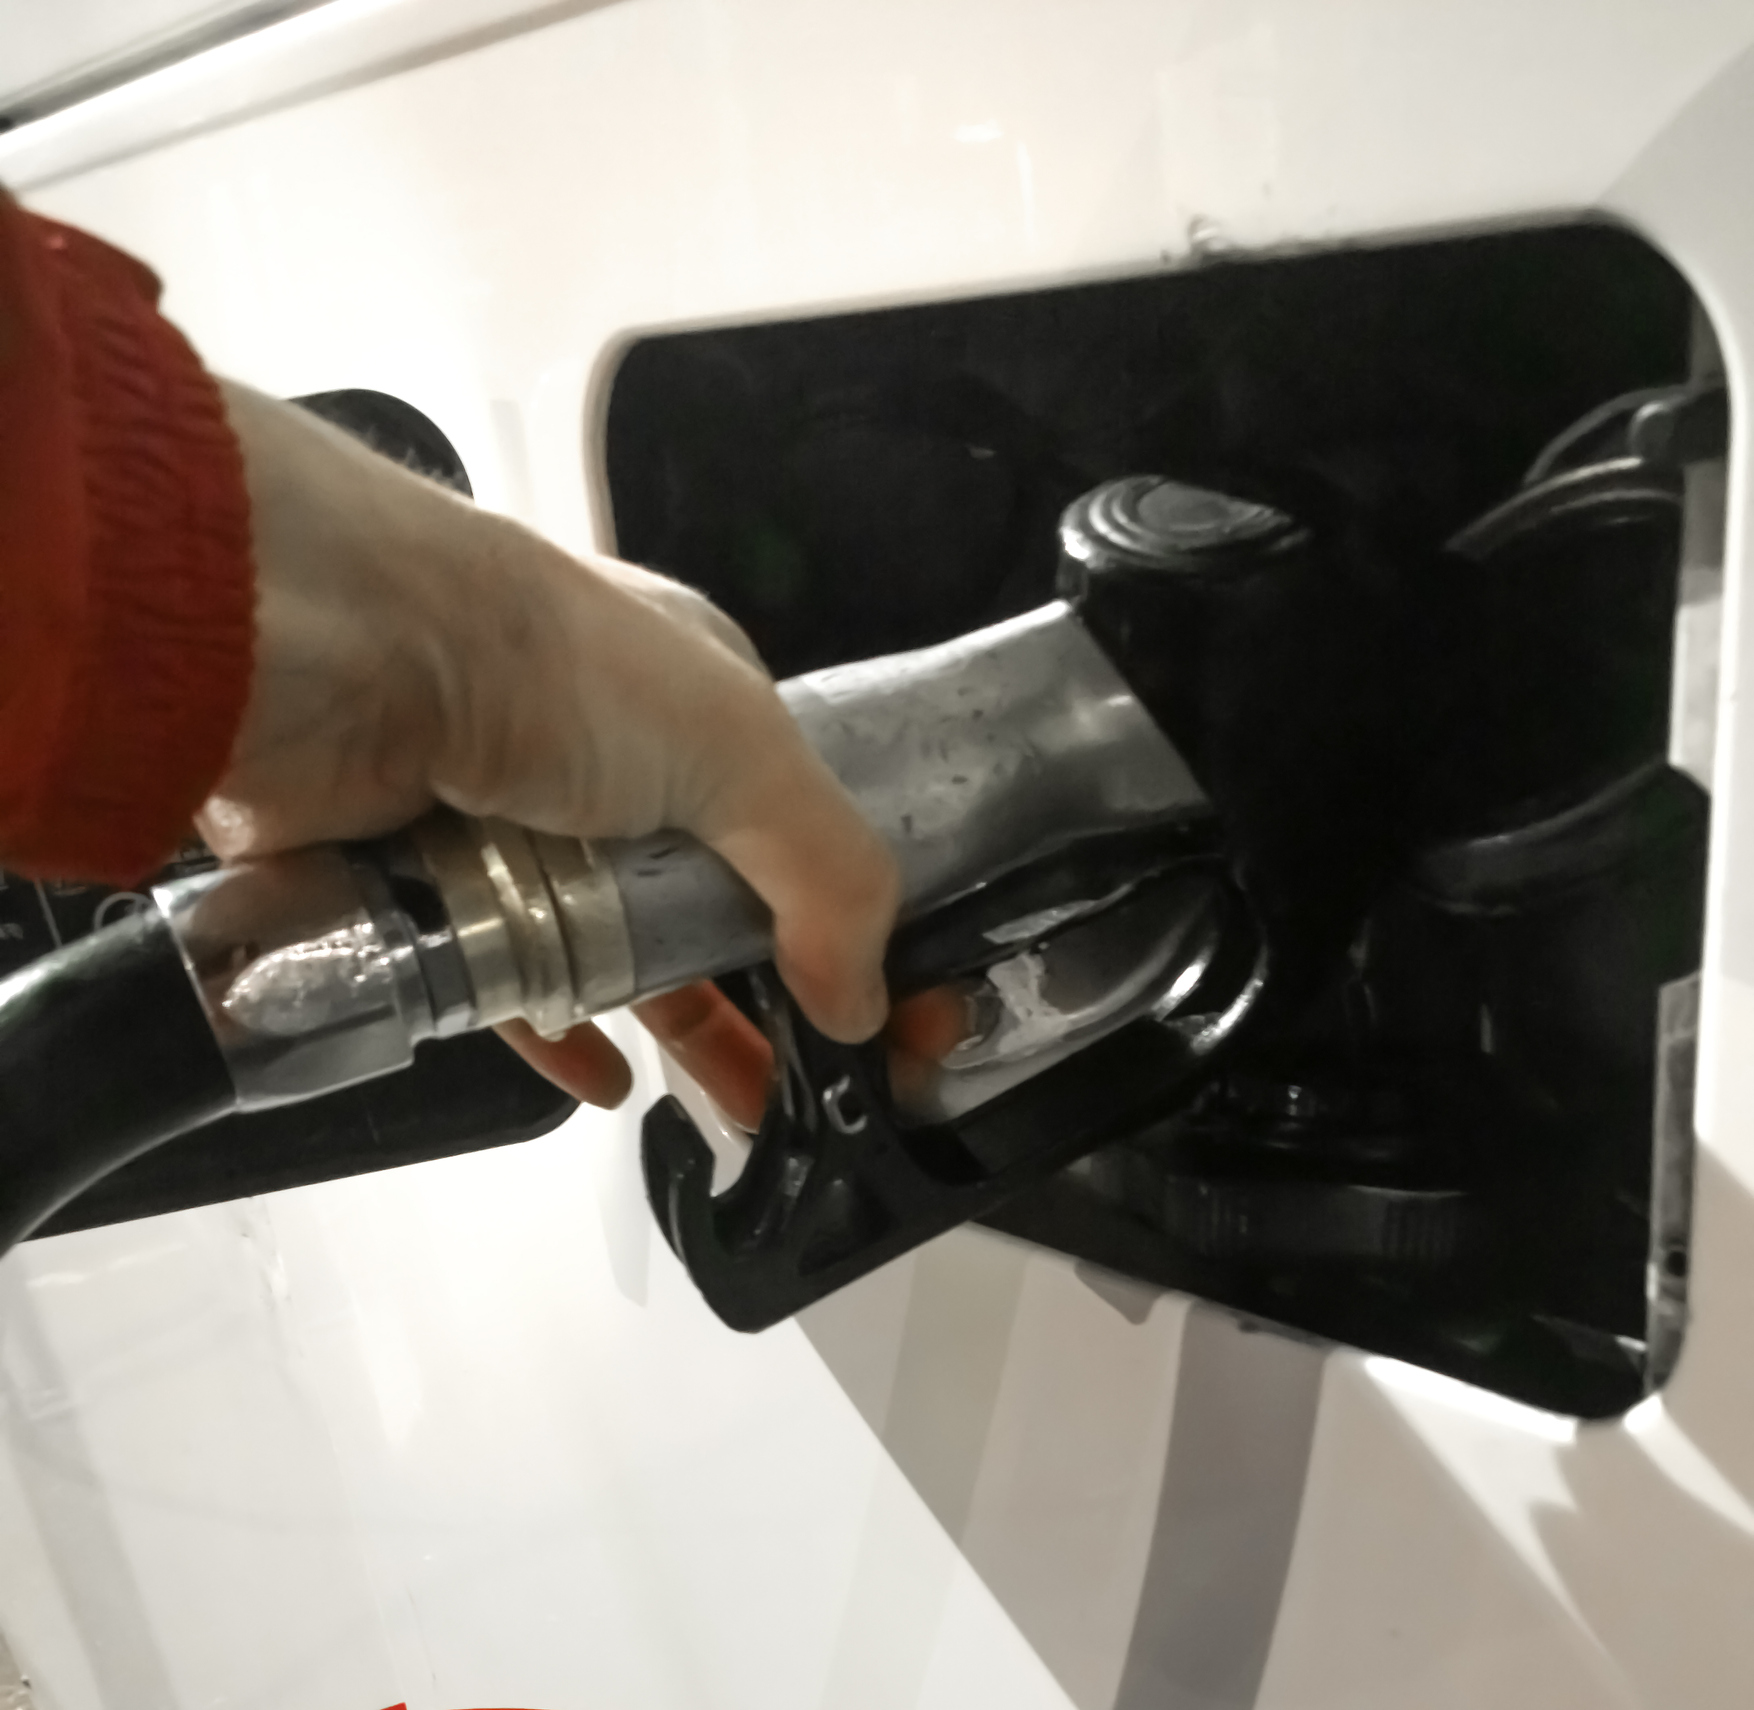 Hand refilling the Bus with fuel